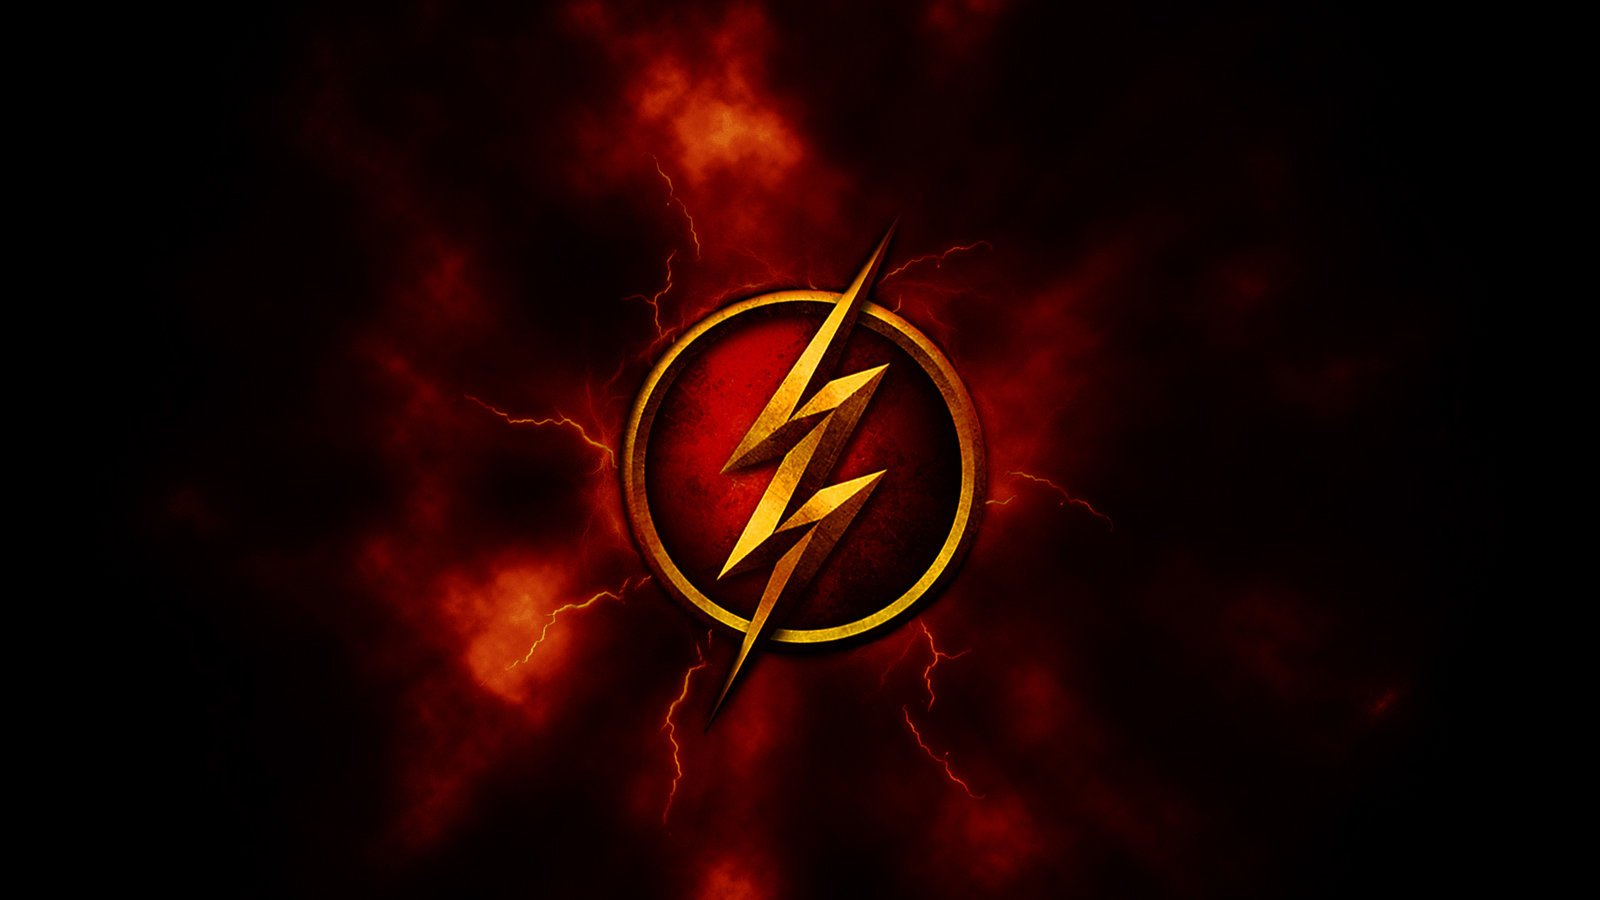 the flash logo wallpaper wallpapersafari